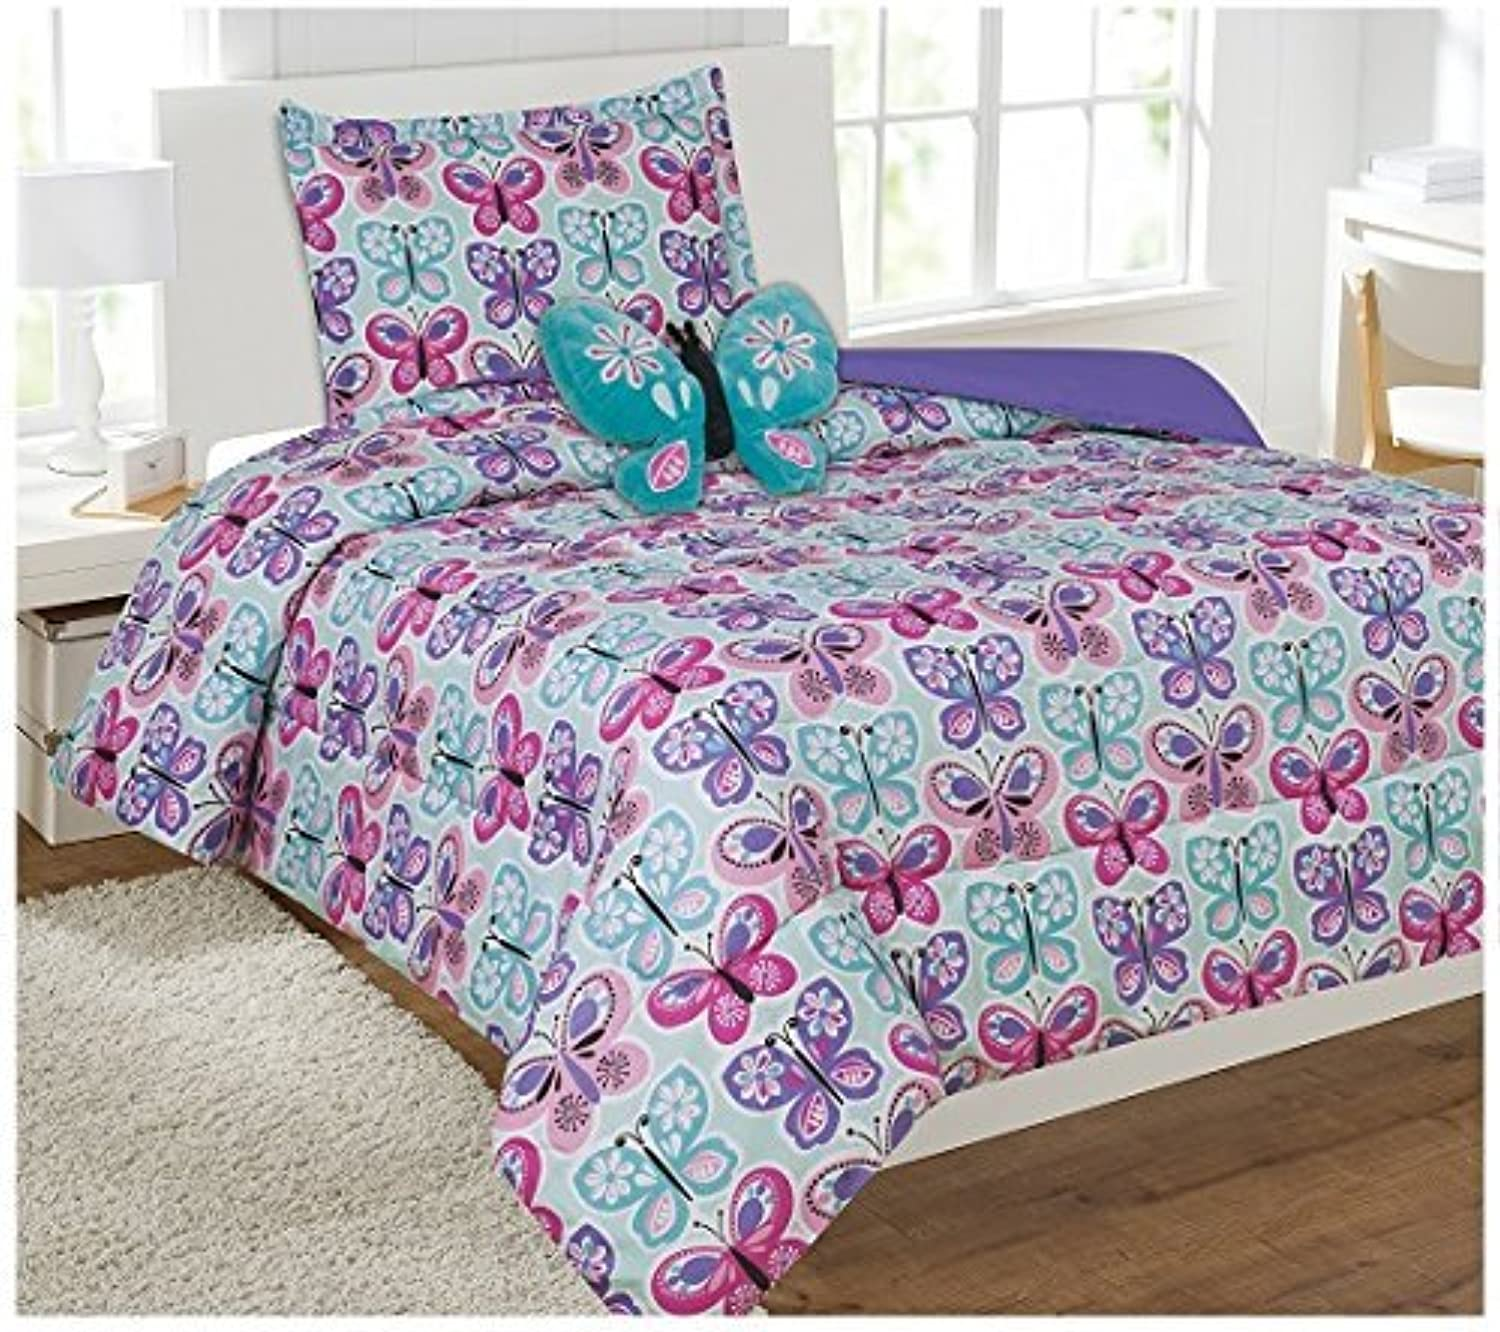 Fancy Linen Collection 6Pc Butterfly Purple bluee Turquoise Comforter Set with Furry Buddy Included Twin Butterfly New